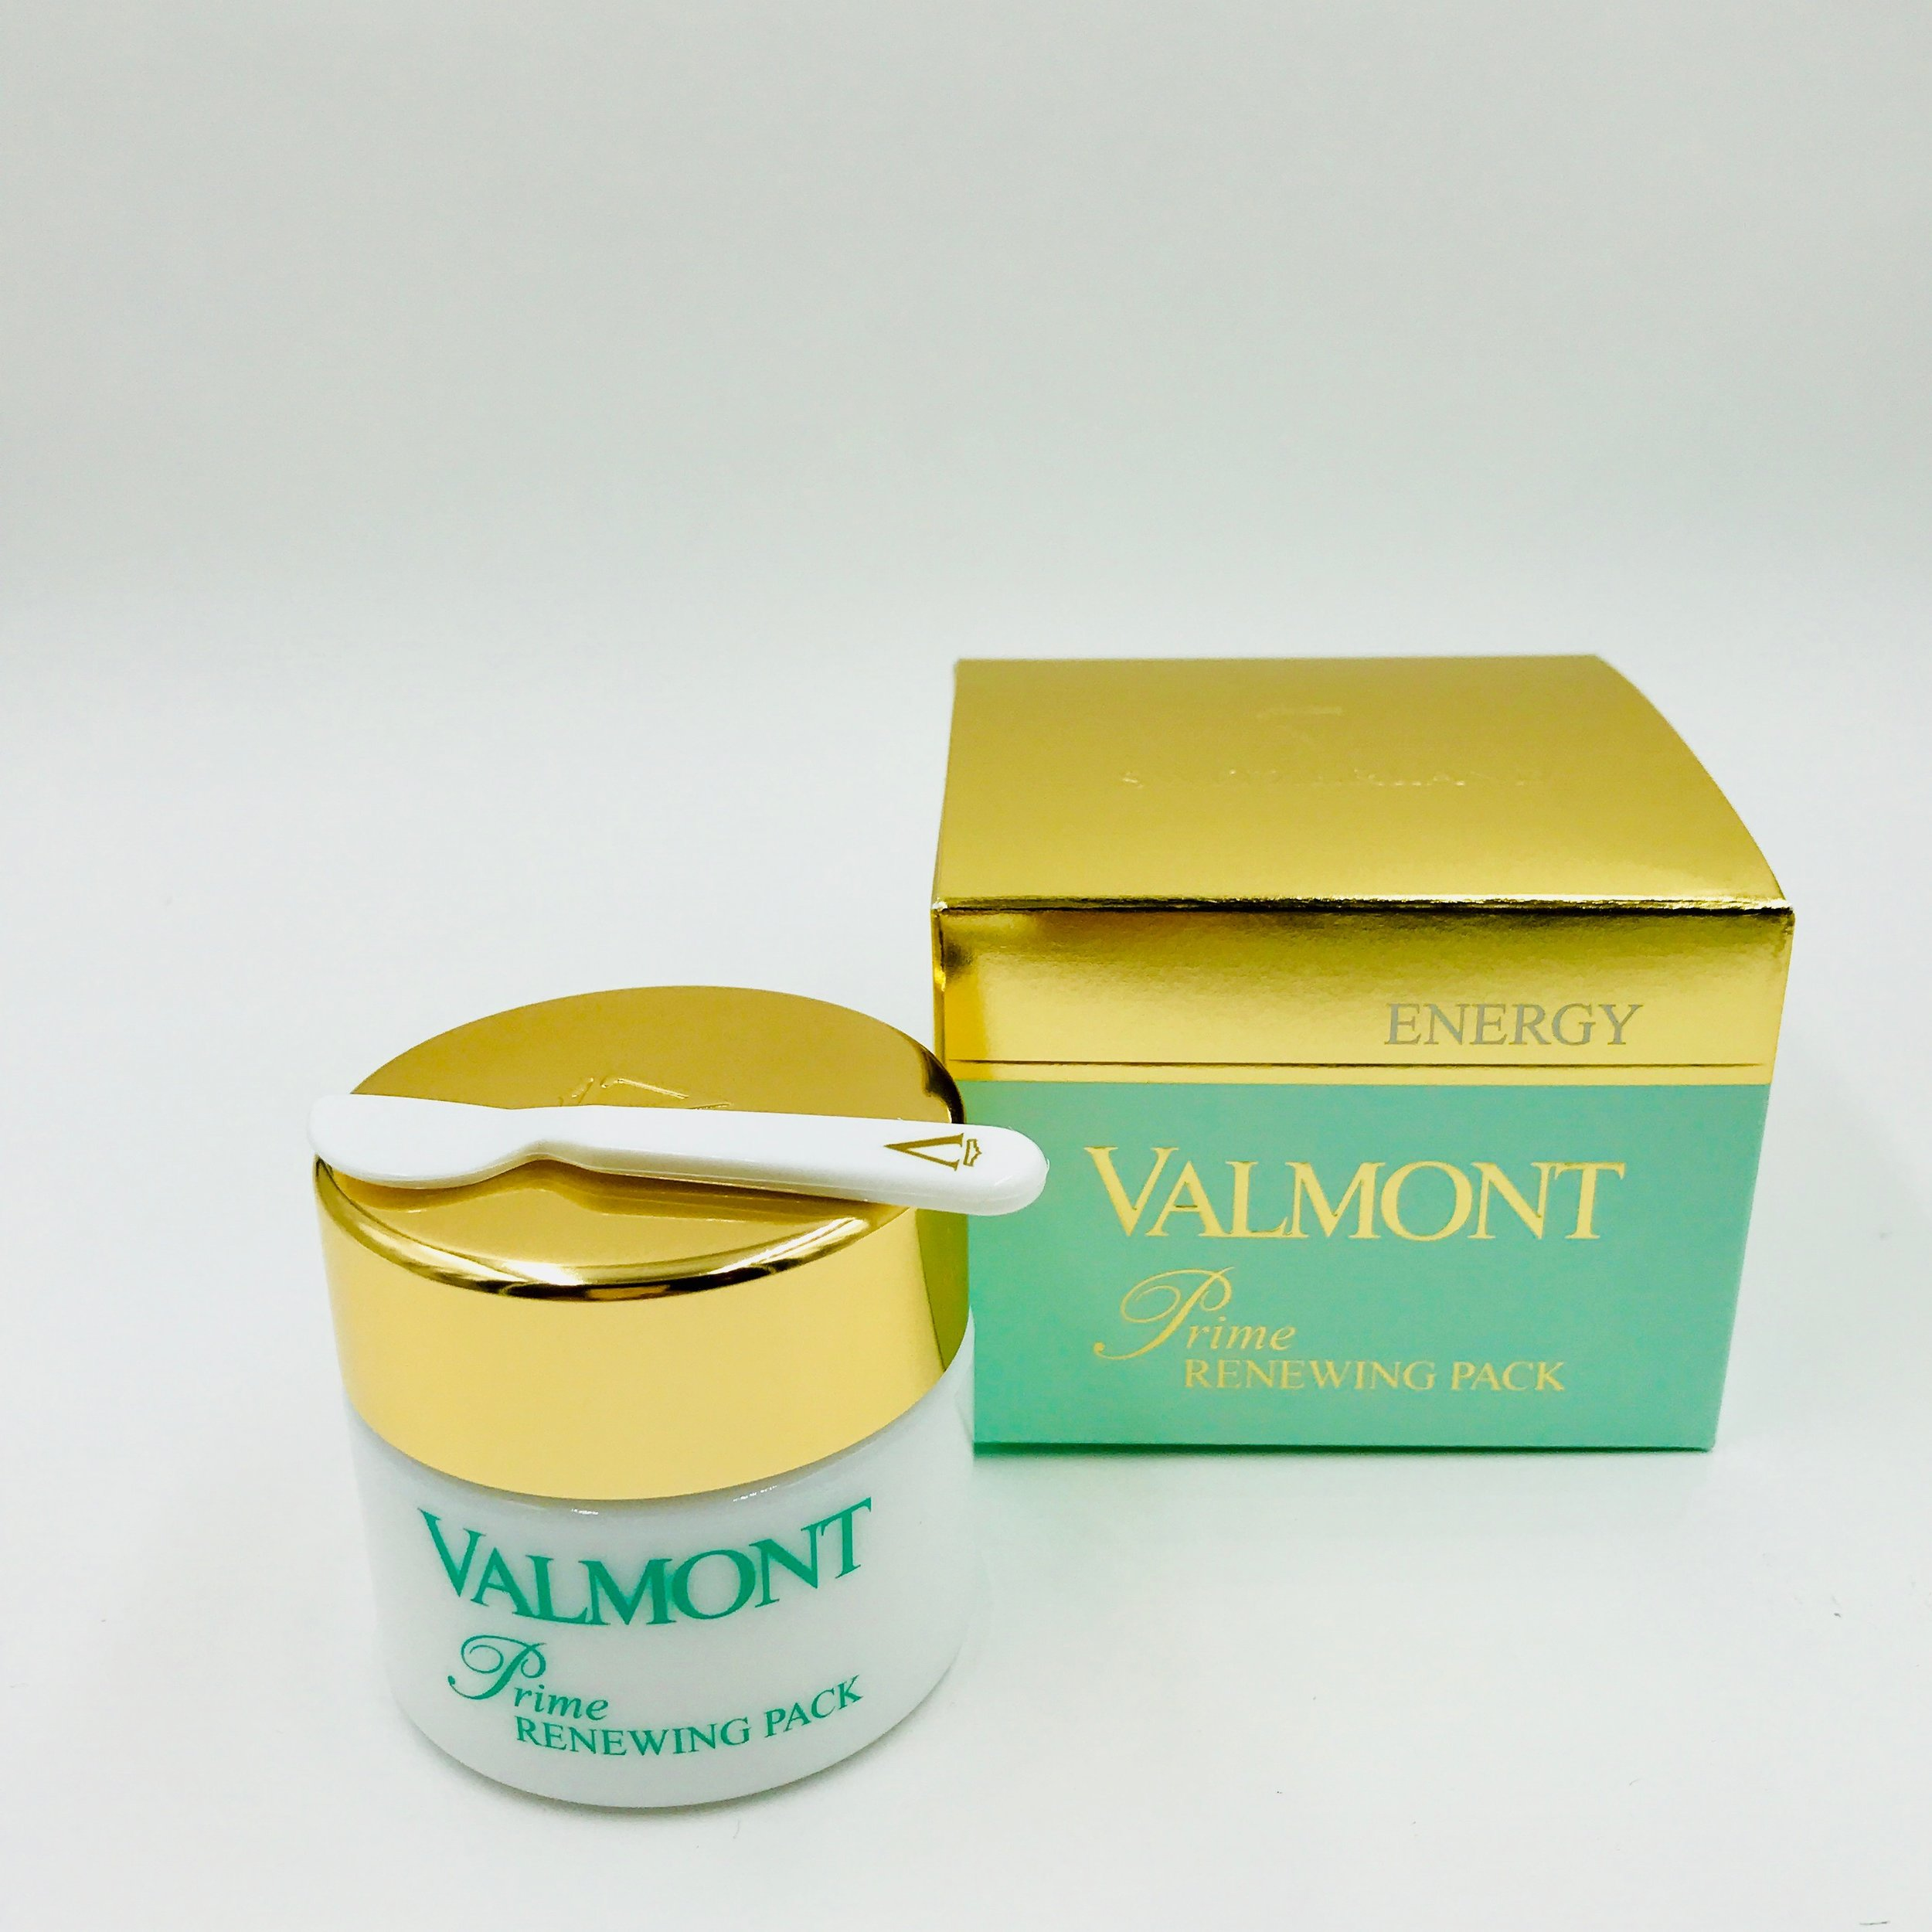 The Valmont Prime Renewing Pack